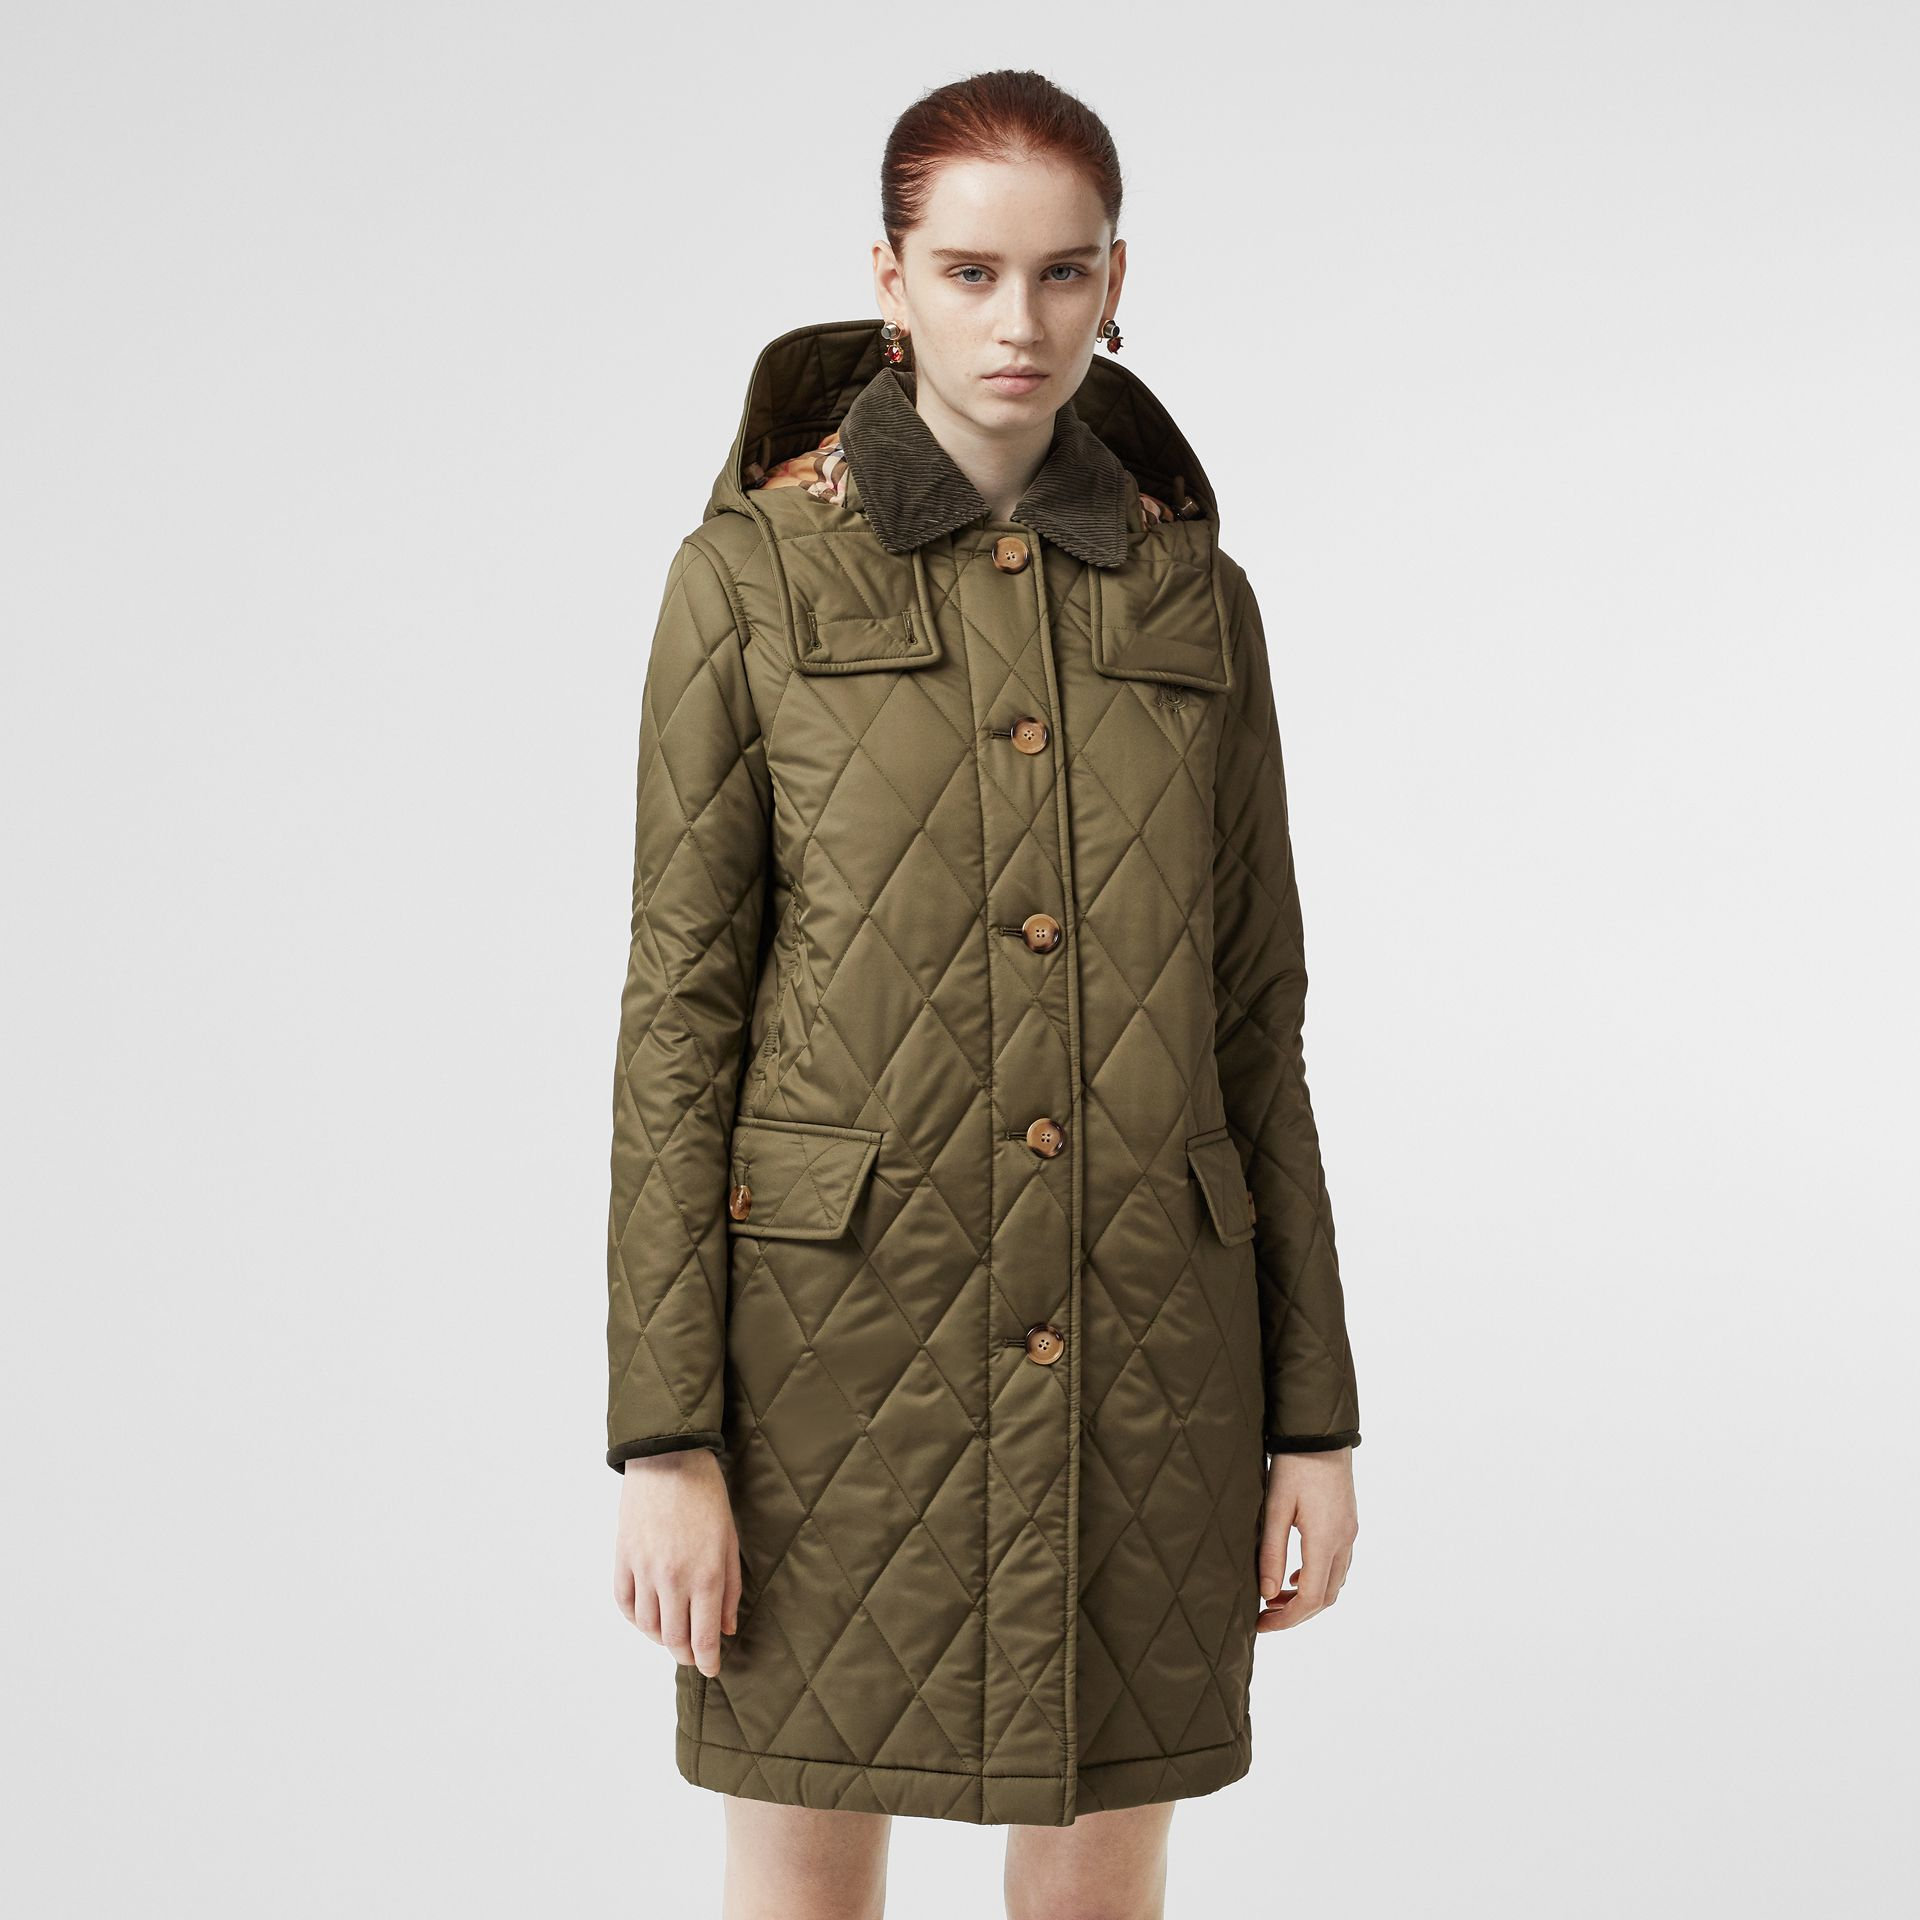 Detachable Hood Monogram Motif Quilted Coat in Olive Green - Women | Burberry - gallery image 5